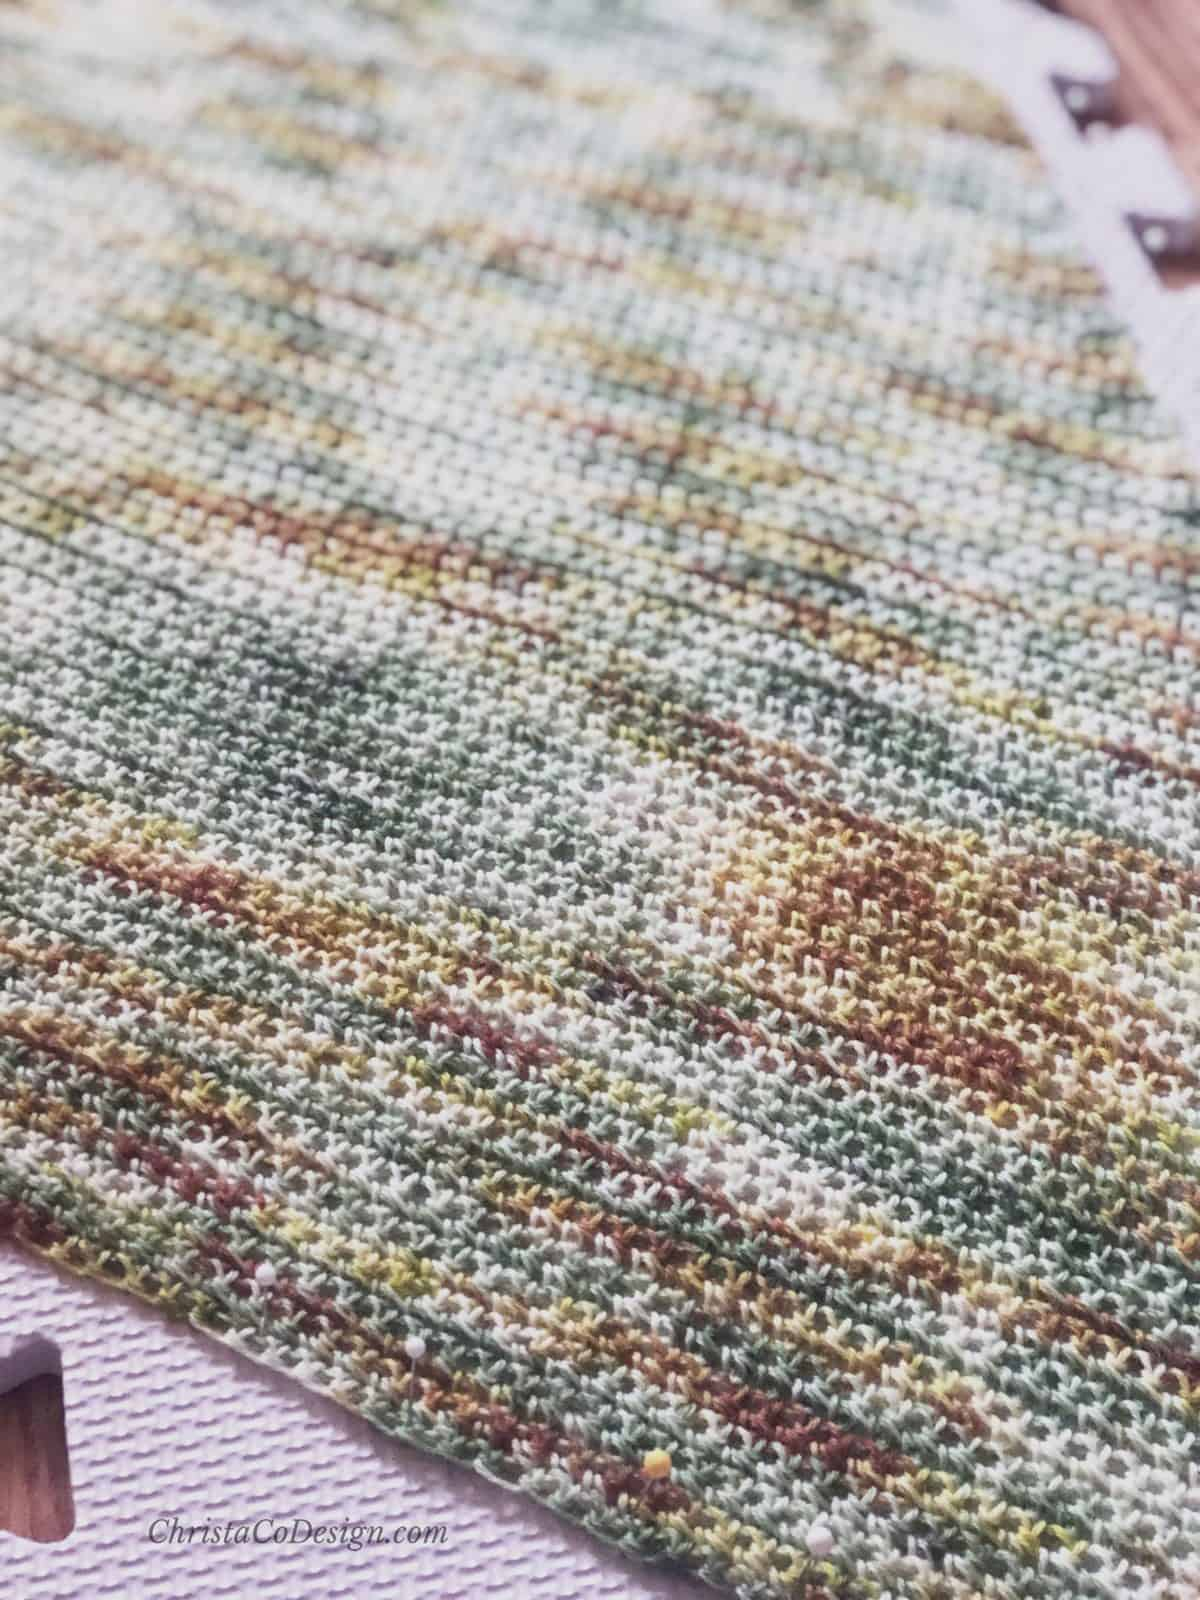 Picture of crochet stitches up close